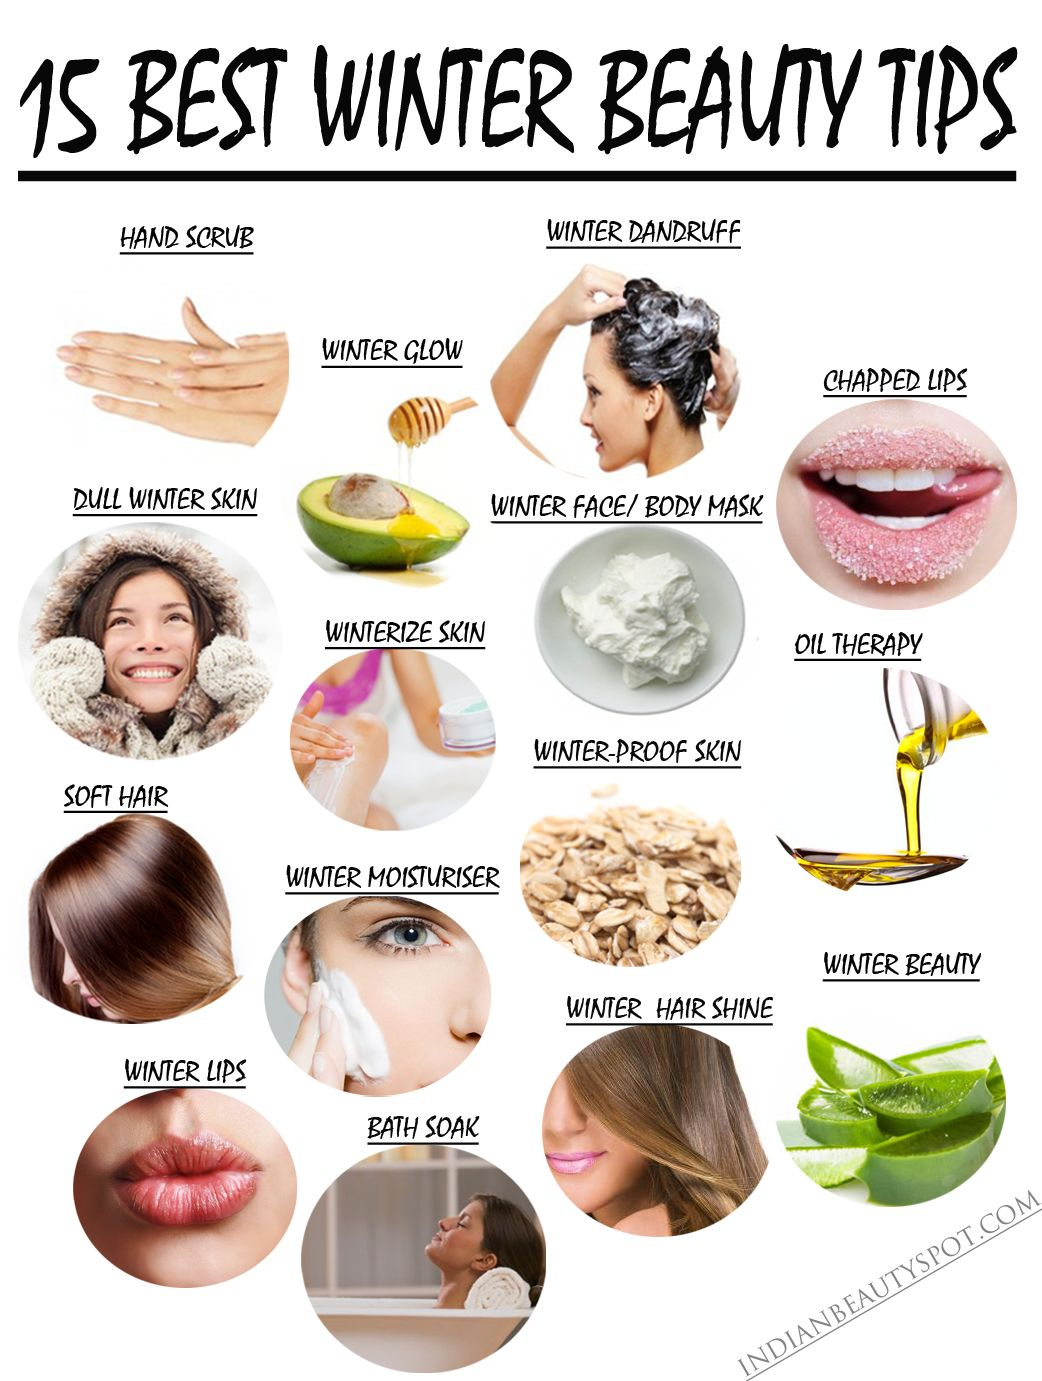 Best Winter Beauty Tips and Tricks - ♥ IndianBeautySpot.Com